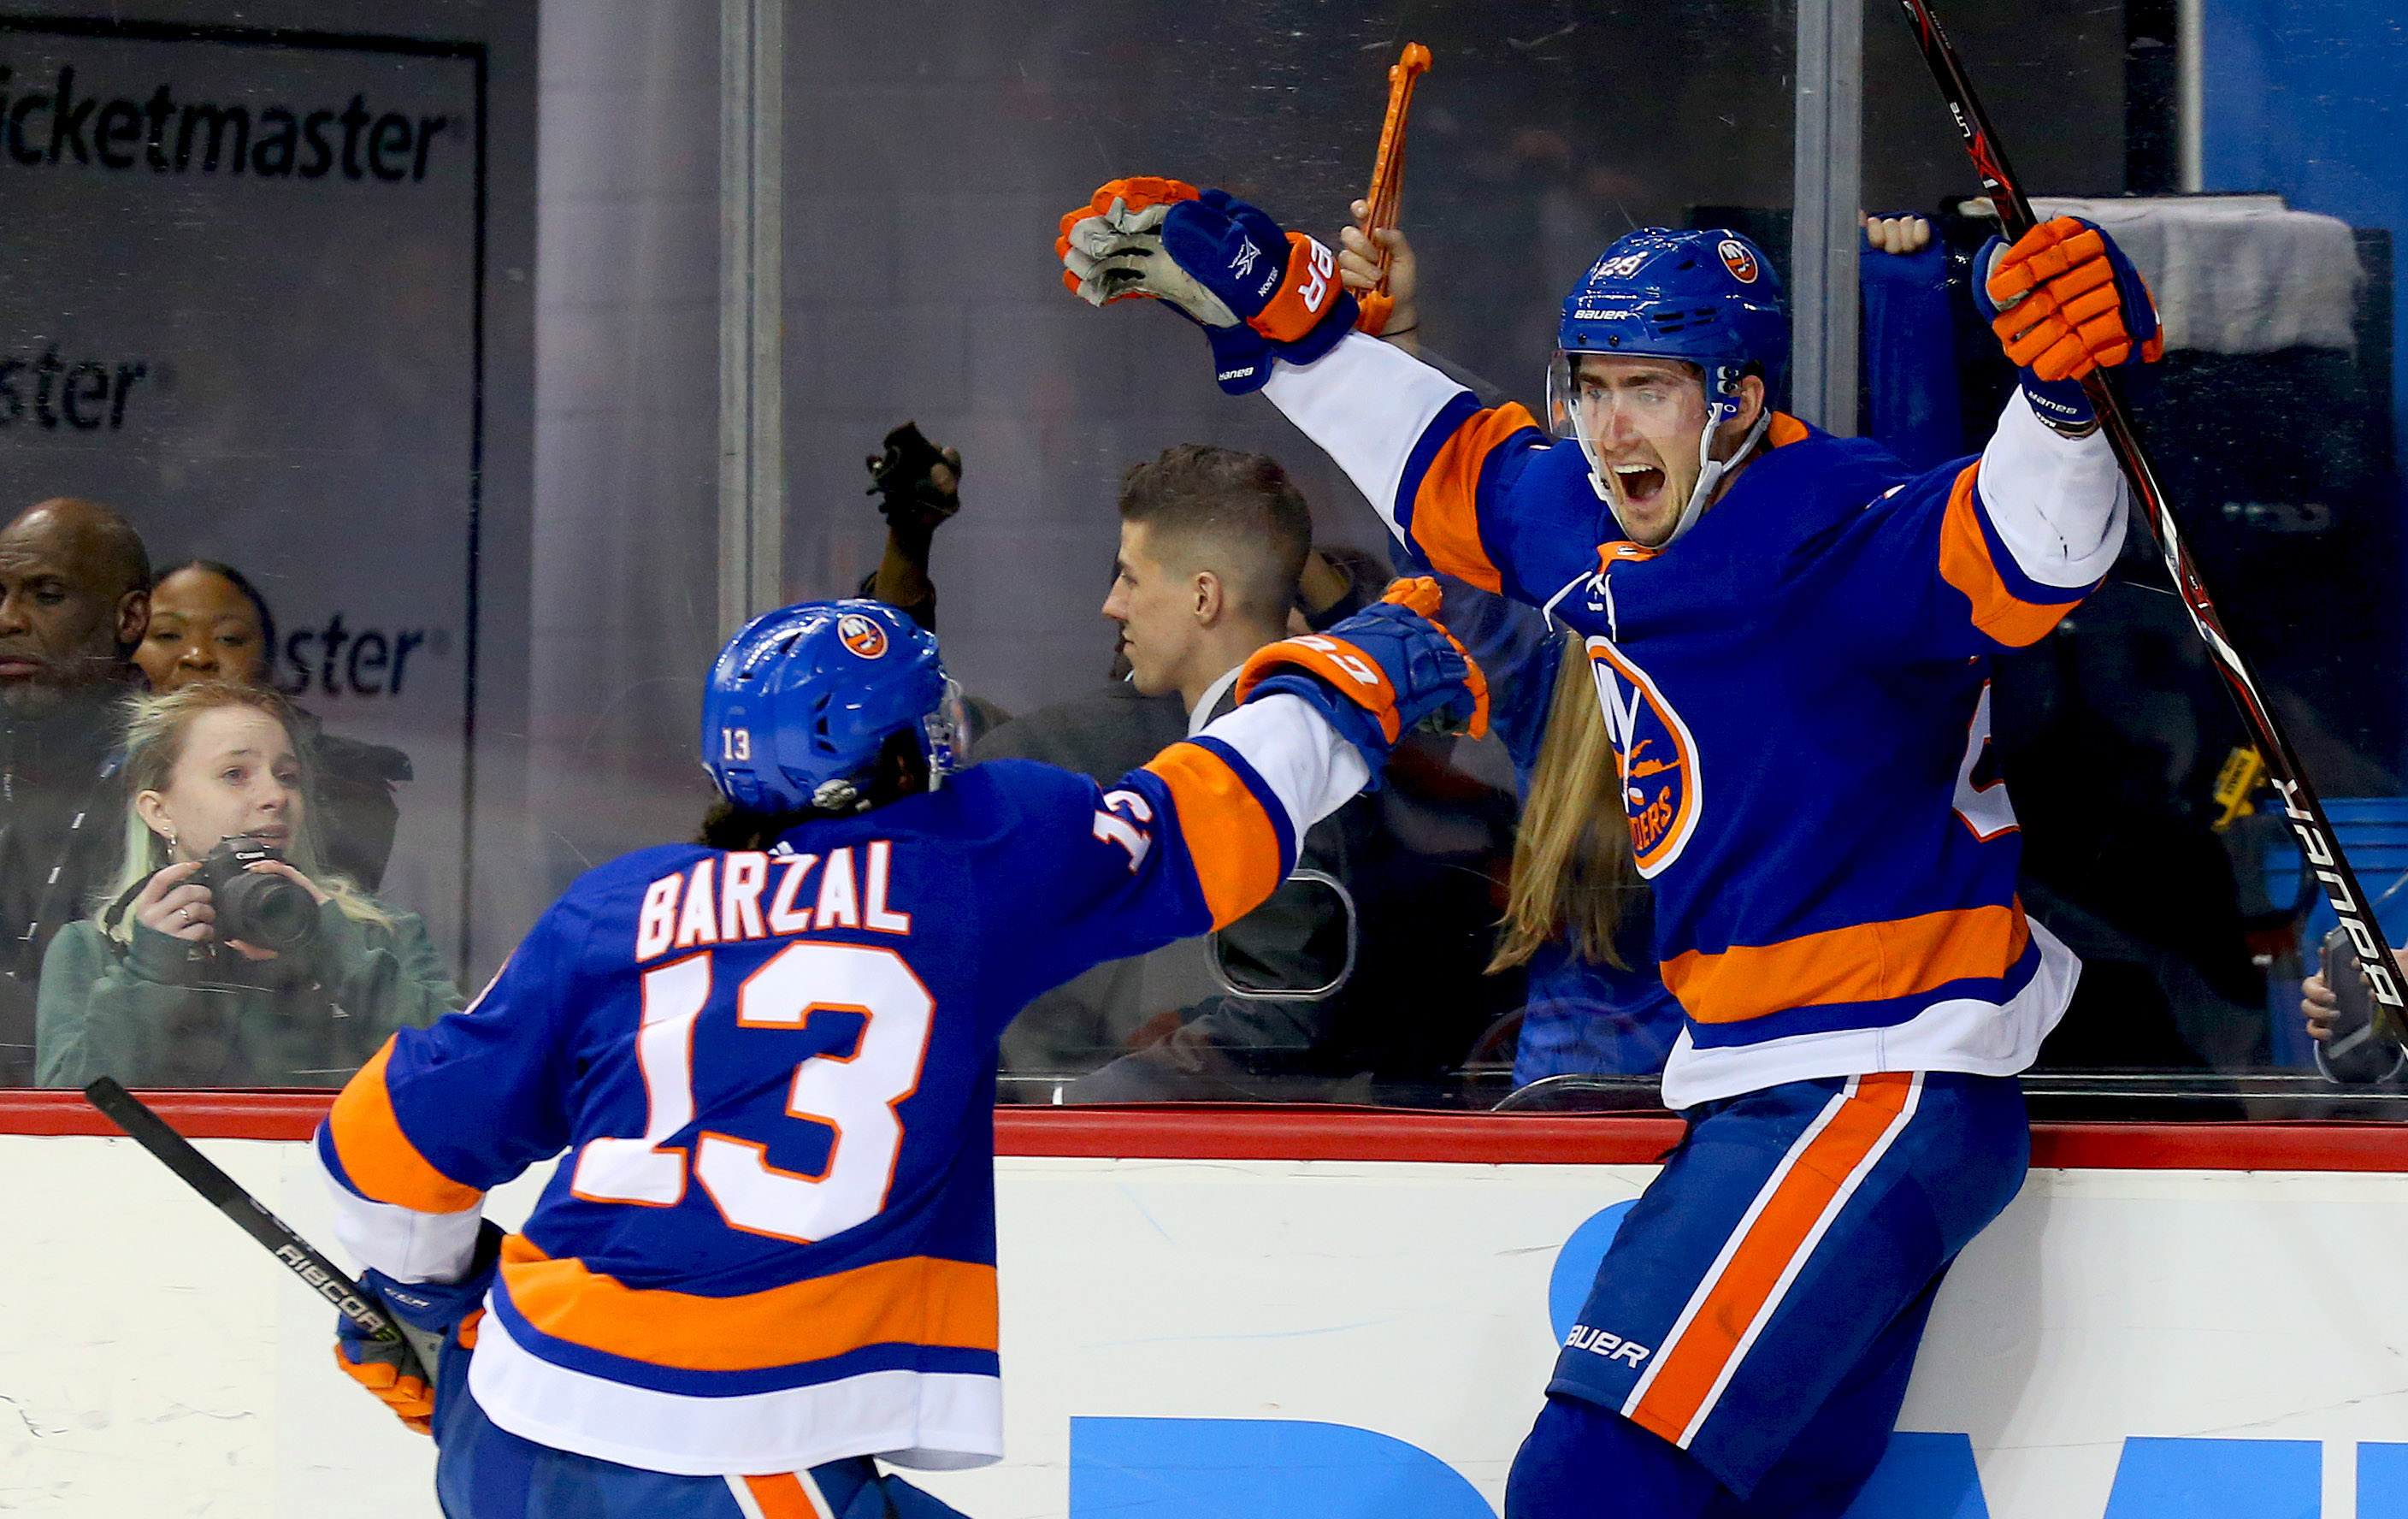 Feb 9, 2018; Brooklyn, NY, USA; New York Islanders center Brock Nelson (29) celebrates with center Mathew Barzal (13) after Nelson scored the game winning goal in overtime against the Detroit Red Wings at Barclays Center. Mandatory Credit: Andy Marlin-USA TODAY Sports